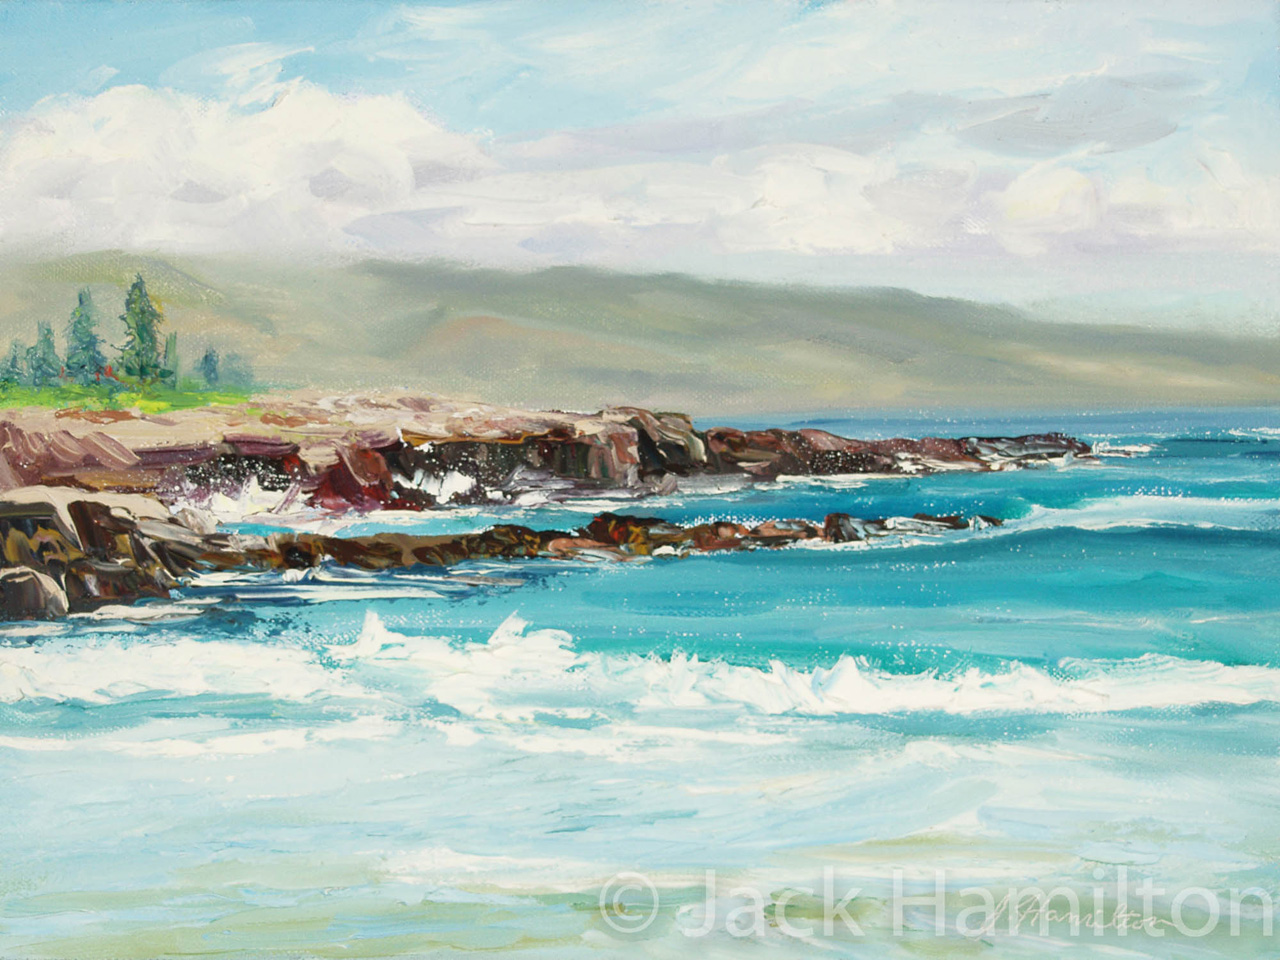 Rocky Point At Fleming Beach by Jack Hamilton oil on canvas